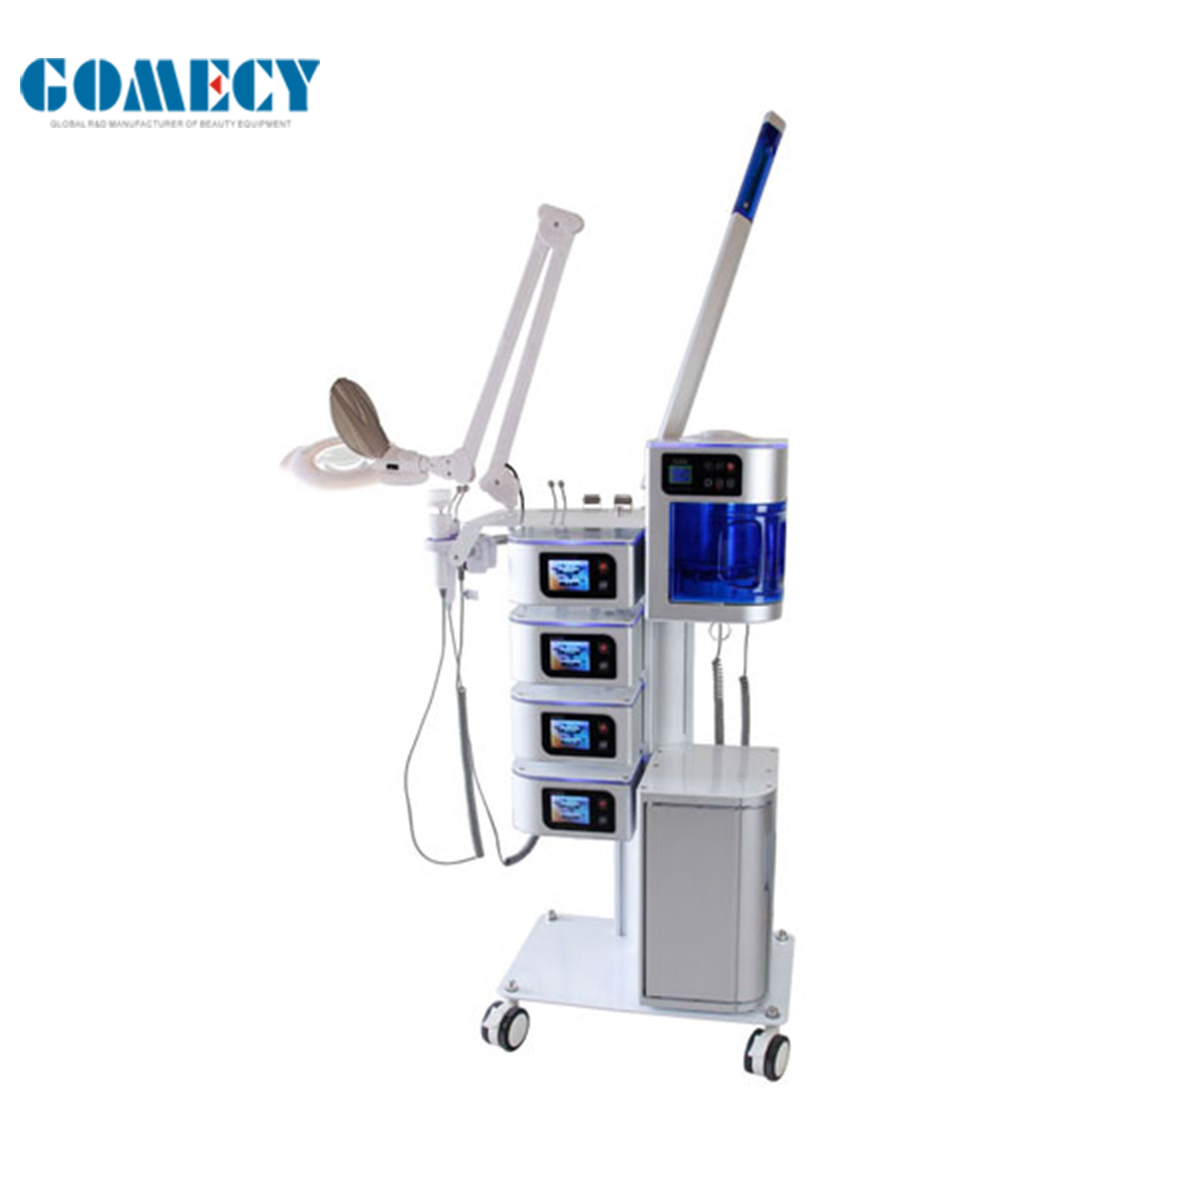 Home use 7 in 1 microdermabrasion machine for sale mesotherapy ultrasound multifuctional salondevice